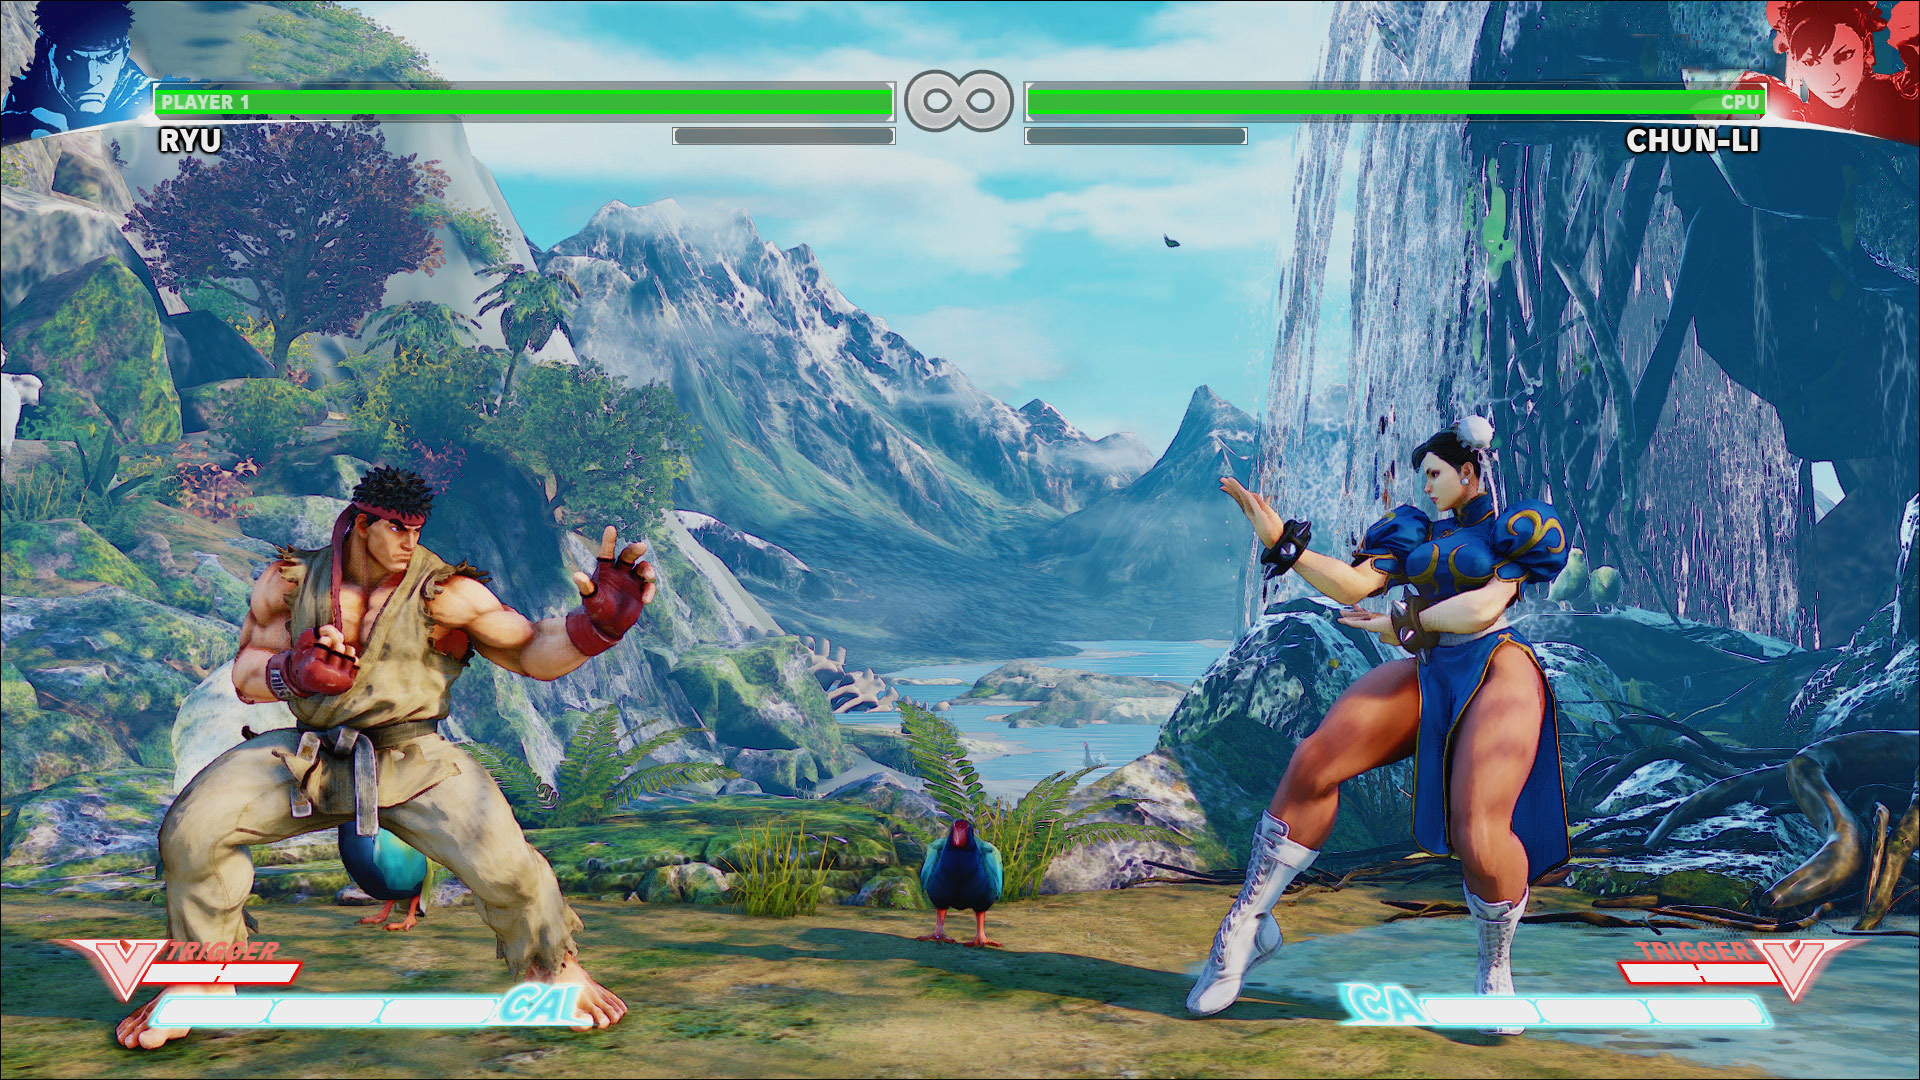 More Street Fighter 5 beta images 1 out of 2 image gallery